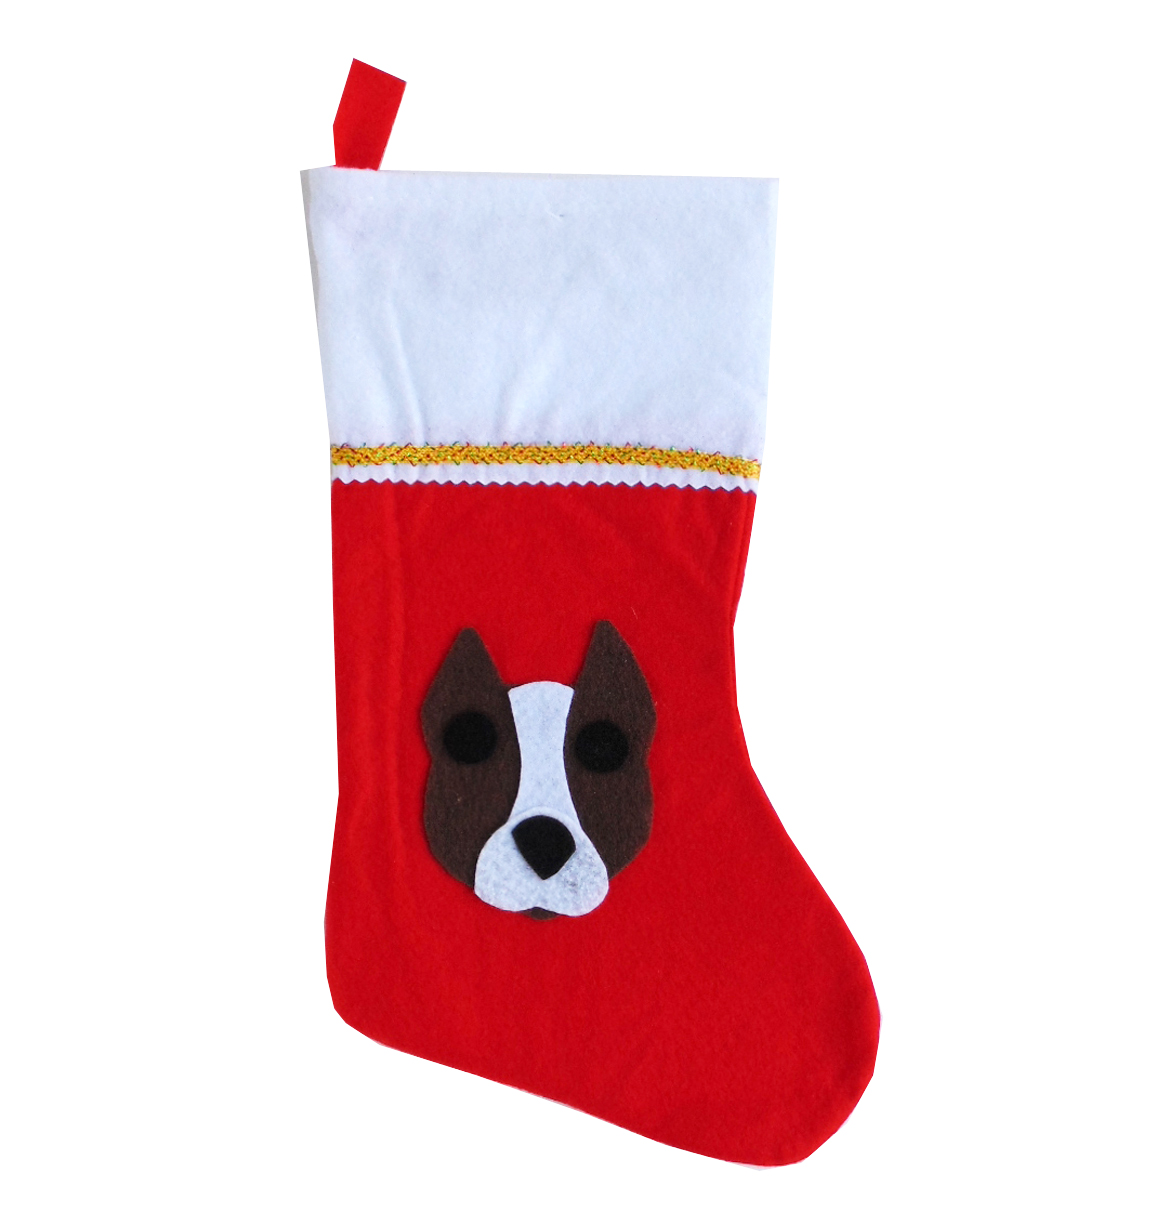 Pit Bull Christmas Stocking - Brown & White - Cropped Ears